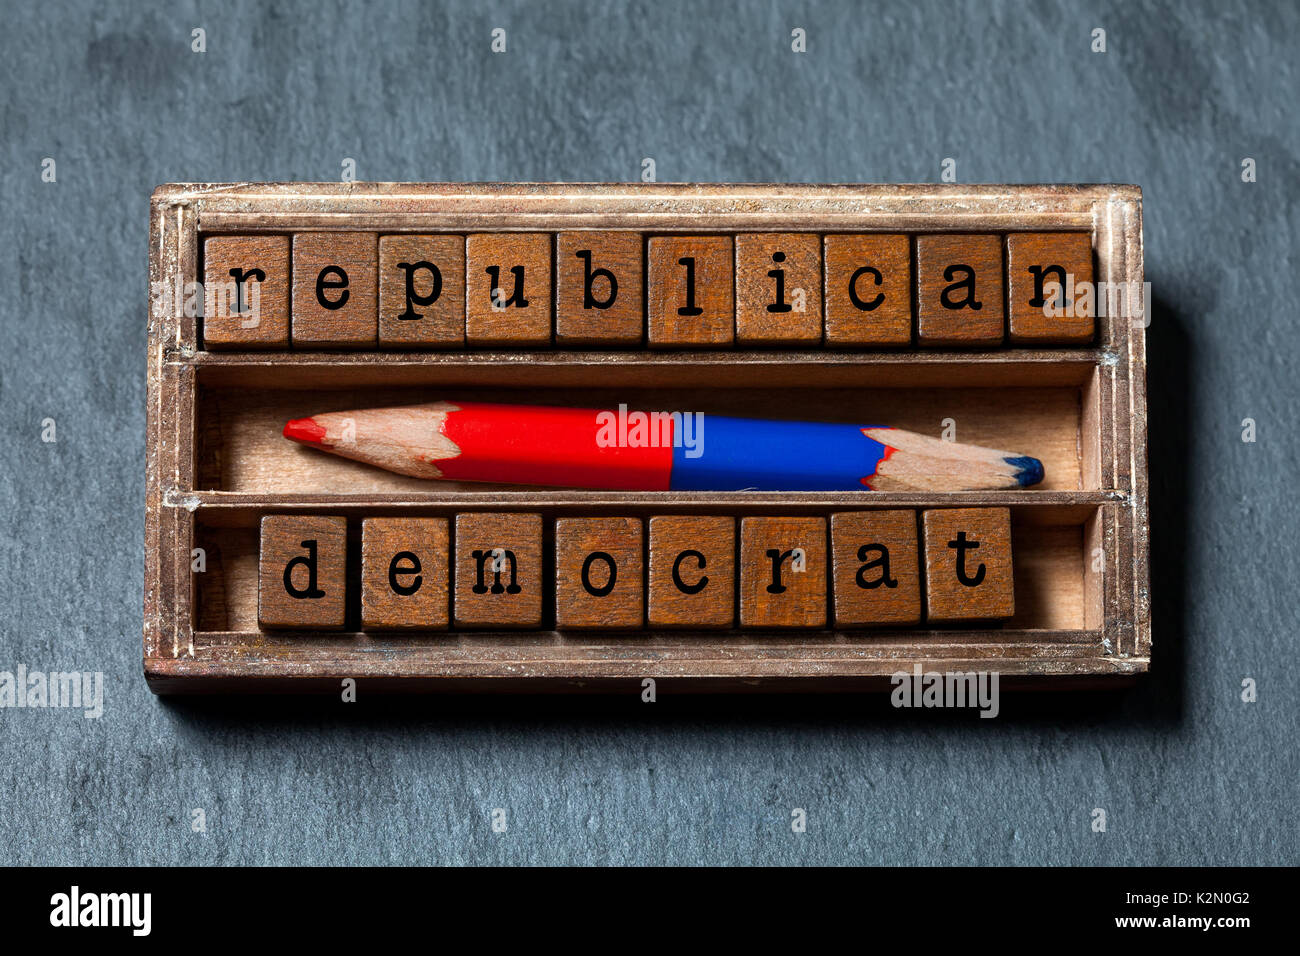 Republican democrat politic alternative choice concept. Vintage box, wooden cubes phrase with old style letters, - Stock Image